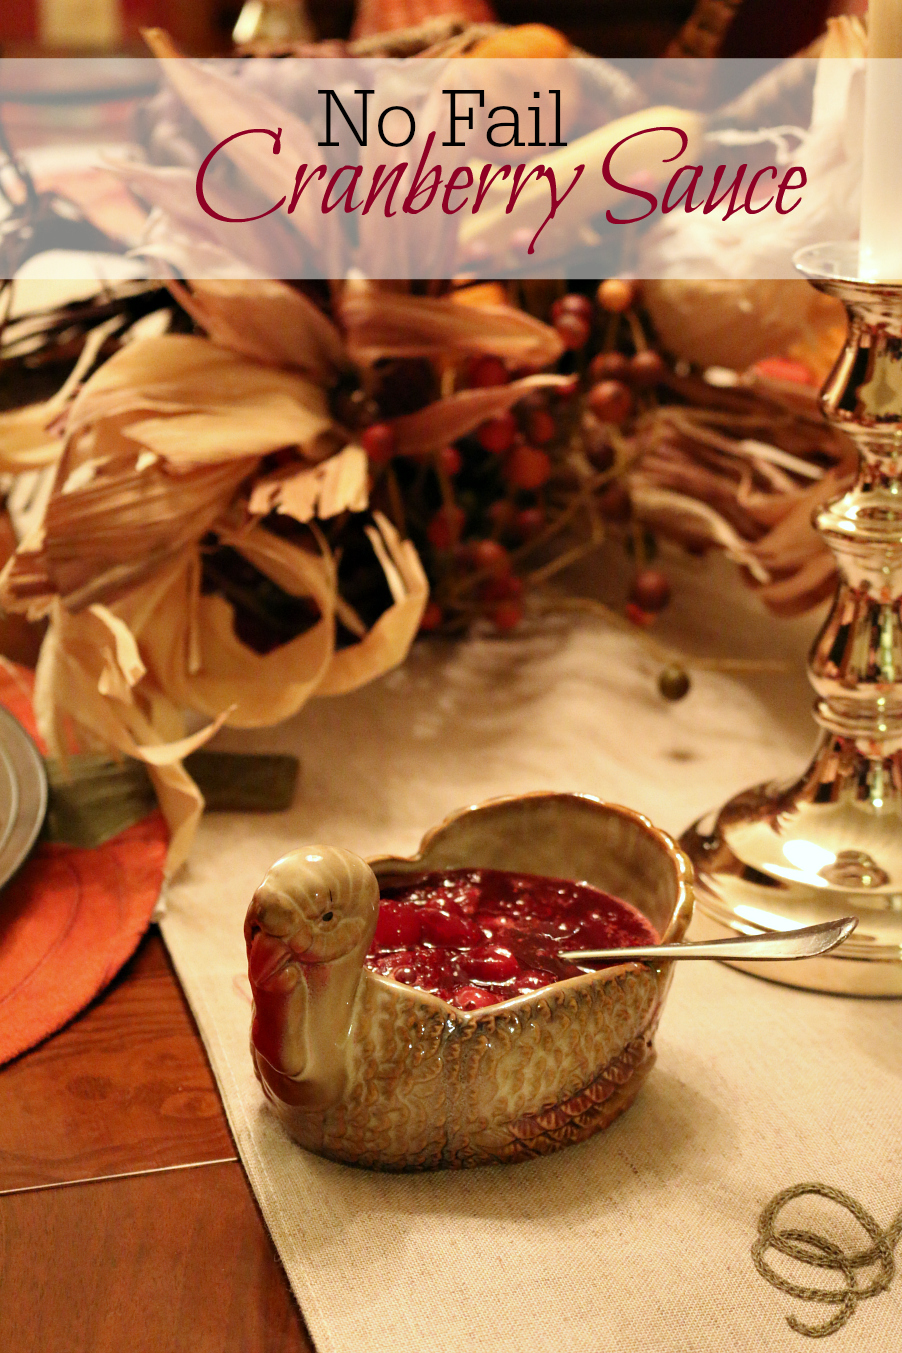 No Fail Cranberry Sauce Recipe - simple as one, two, three . . .